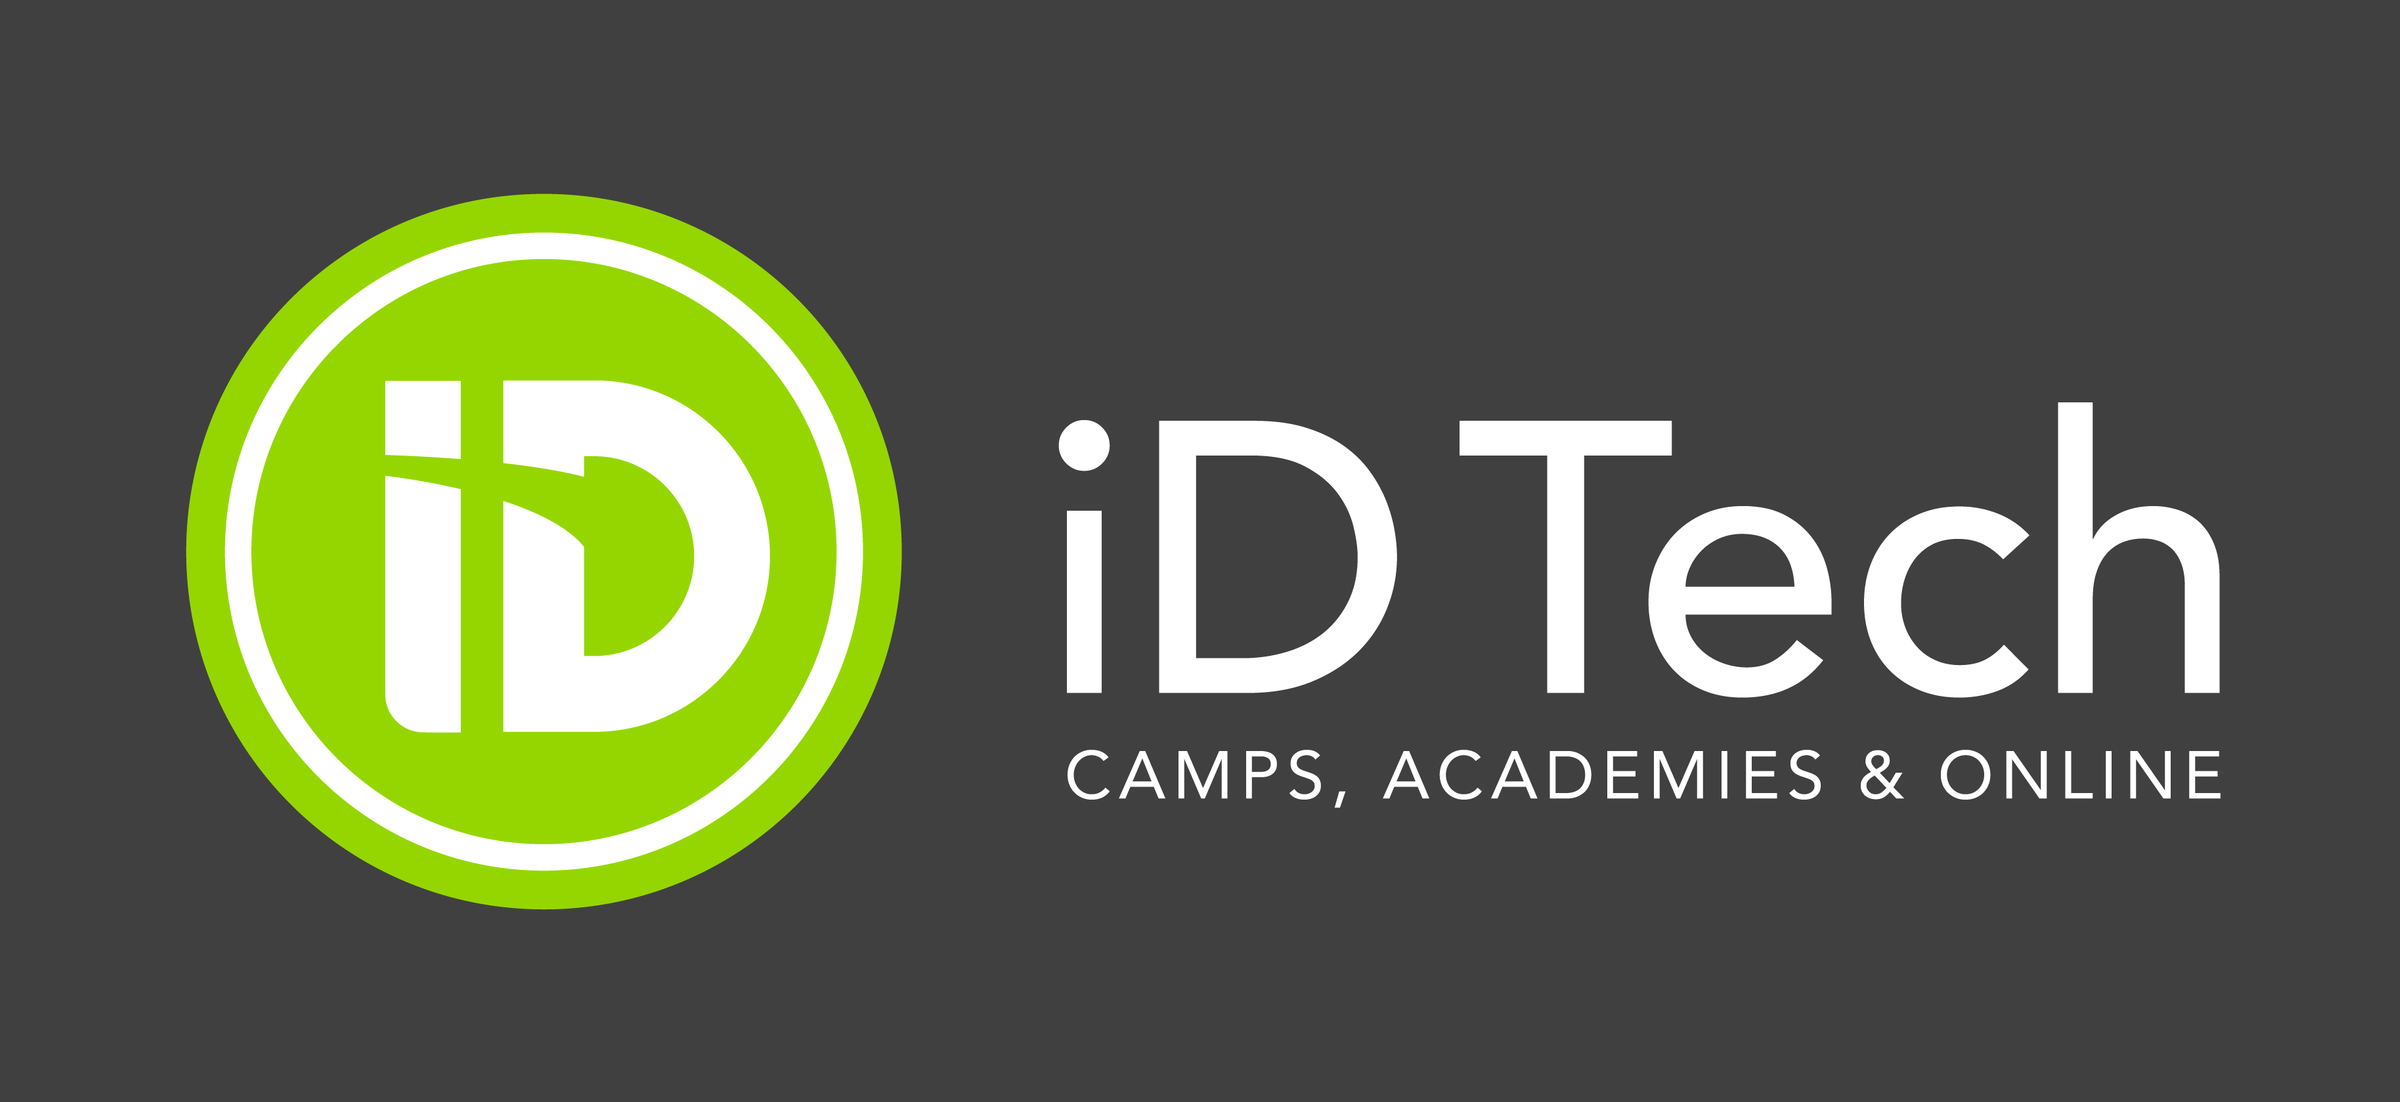 iD Tech Camps: #1 in STEM Education - Held at NYU - 10th Street